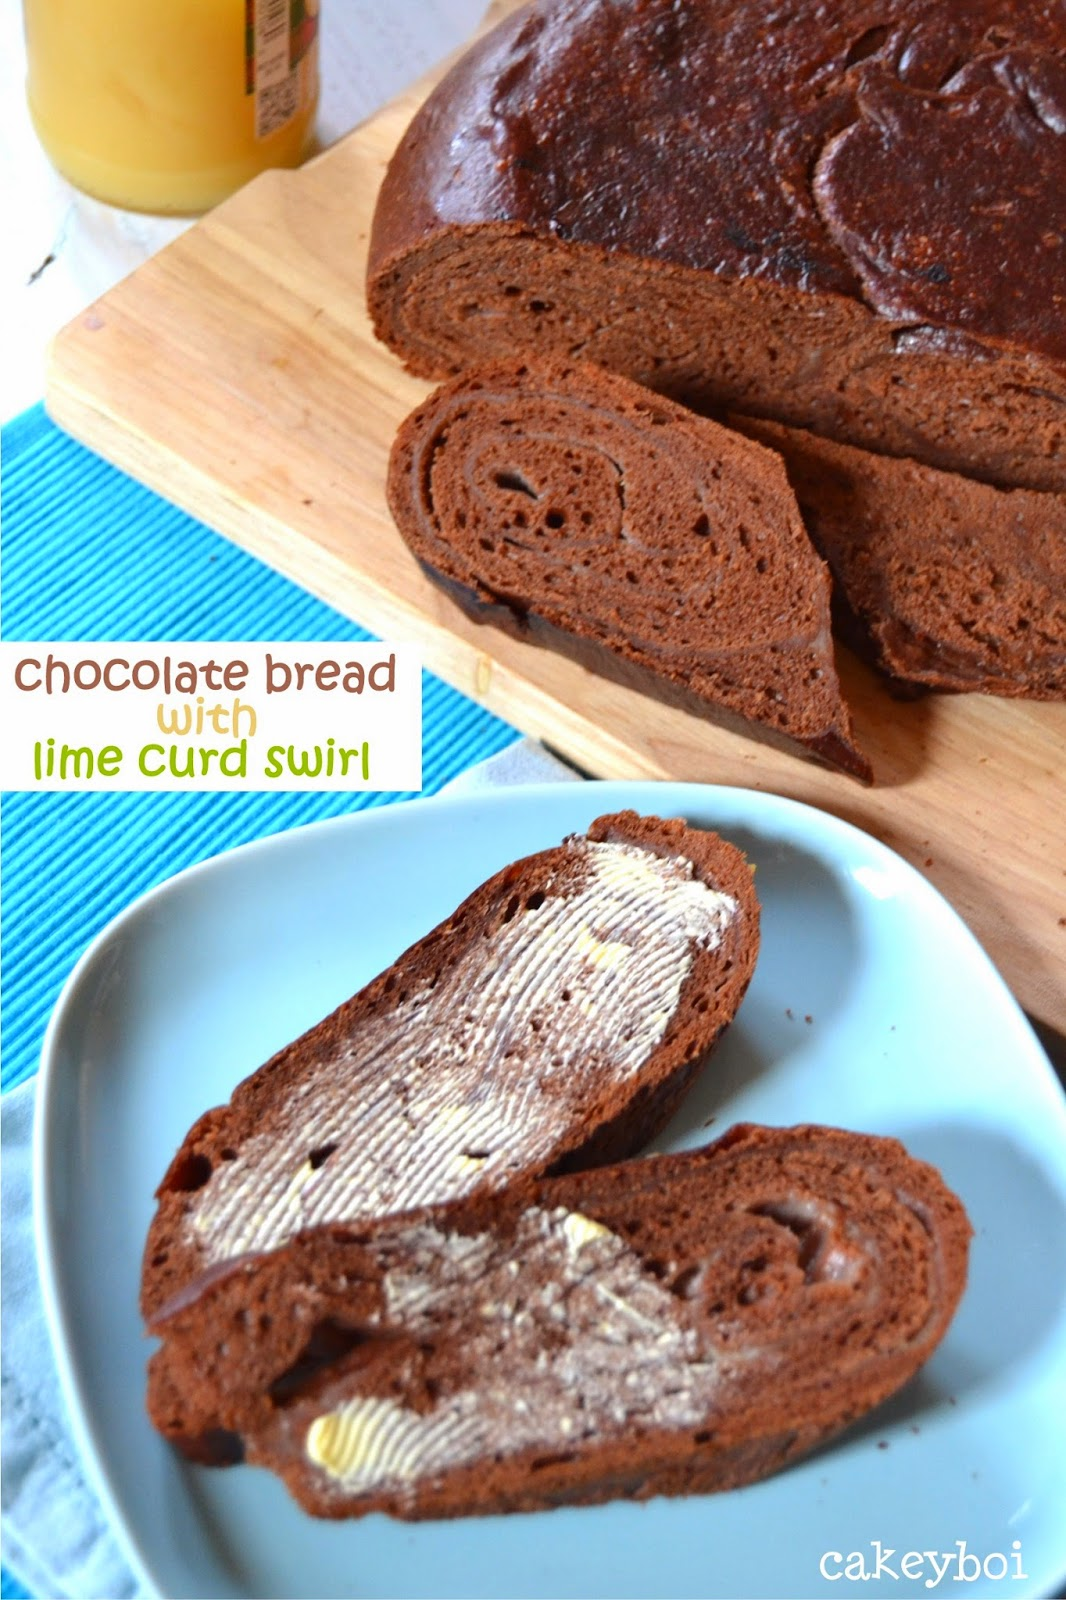 chocolate bread with lime curd swirl